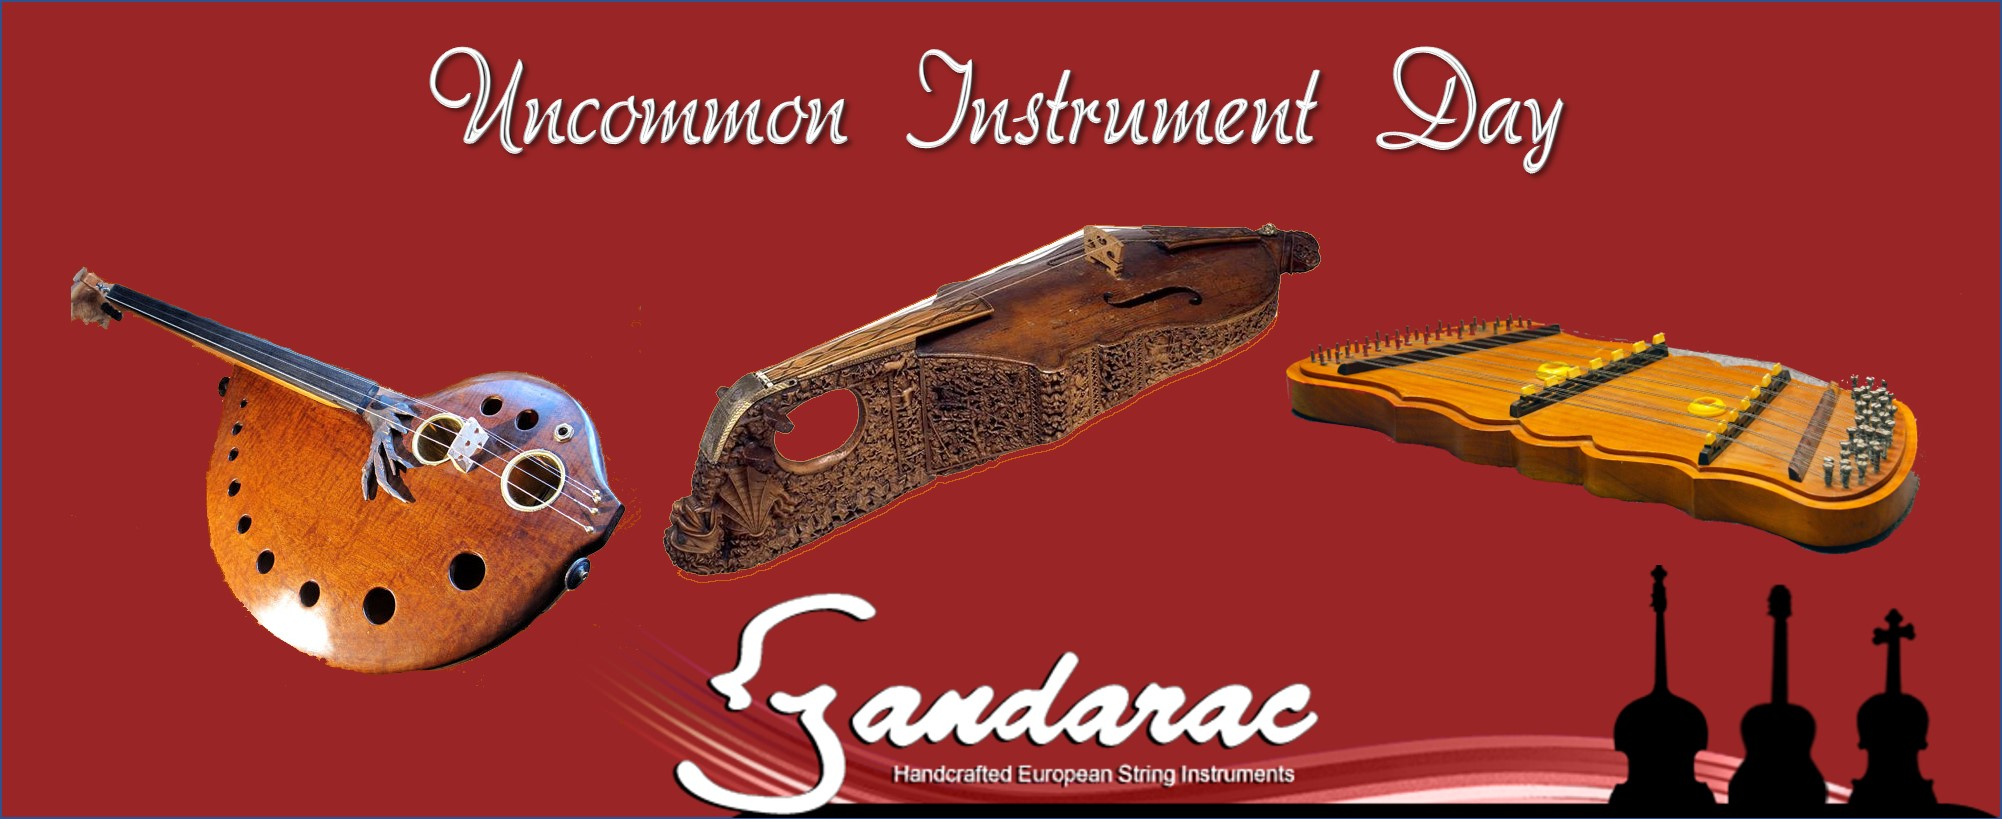 31 - uncommon instrument day